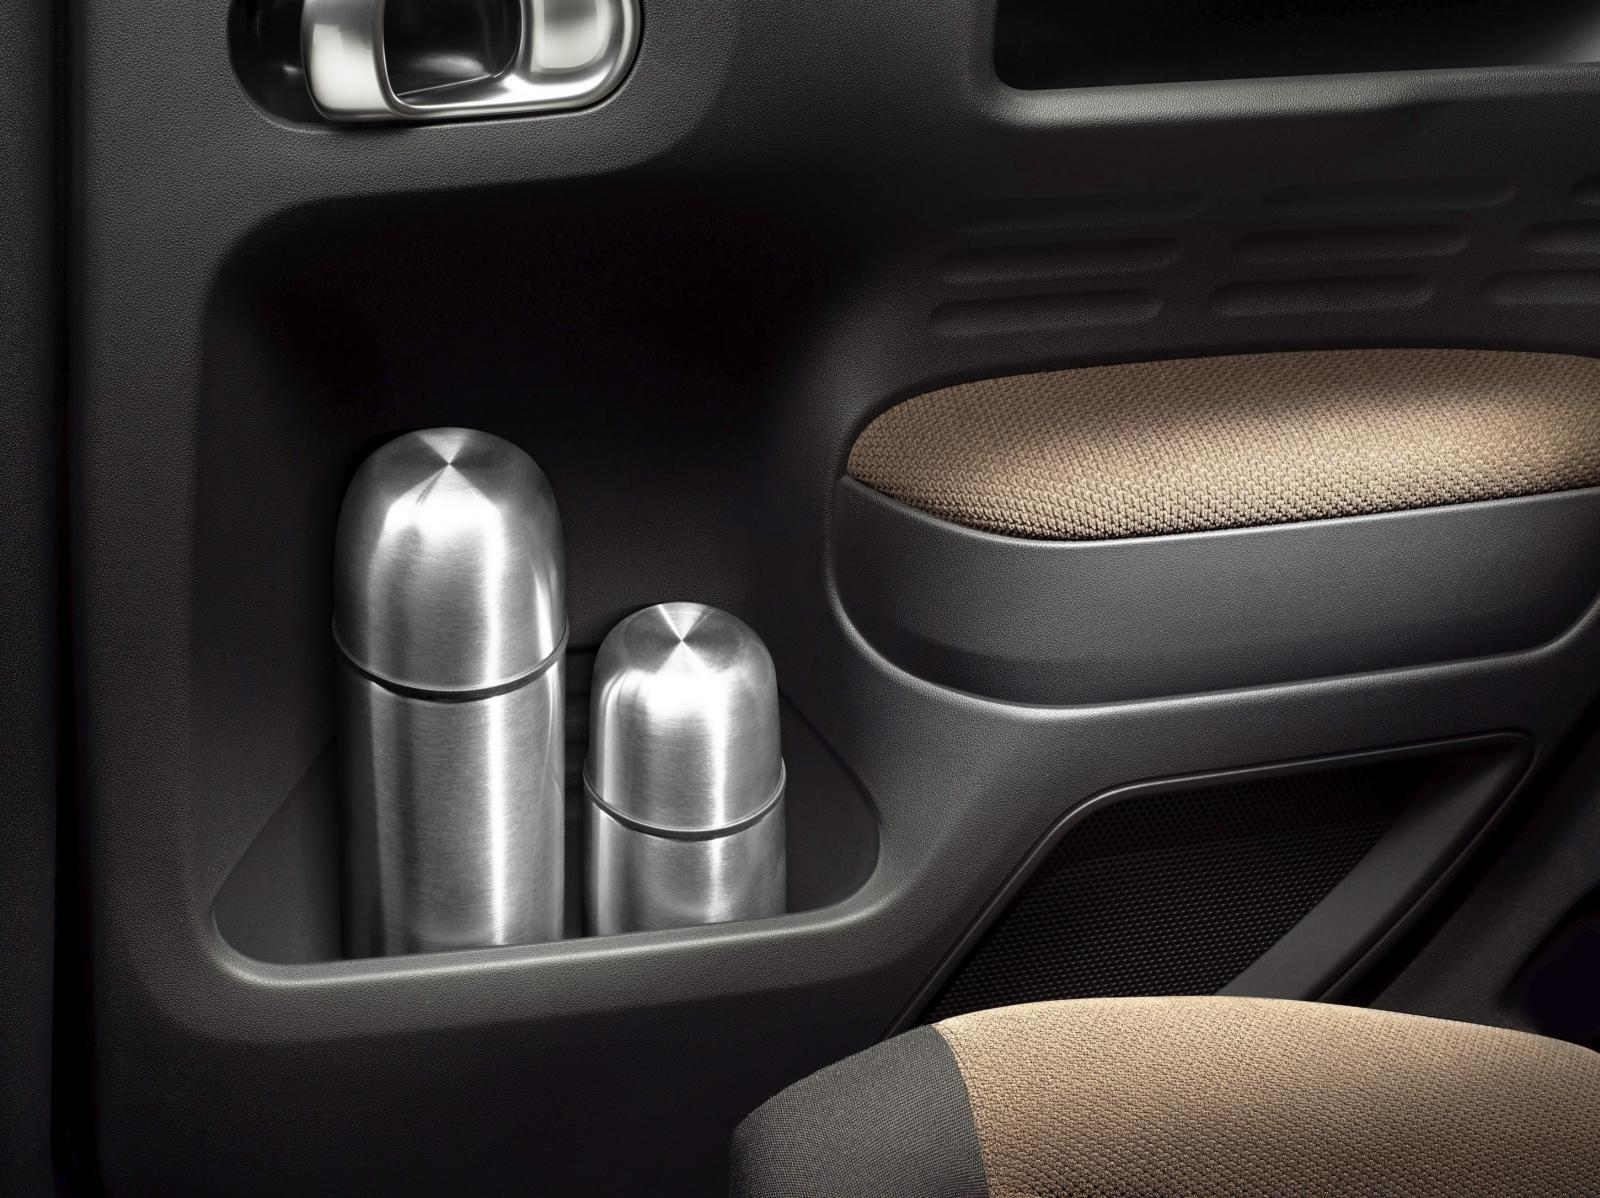 C4 Cactus Shine edition 2014 bottle-holder